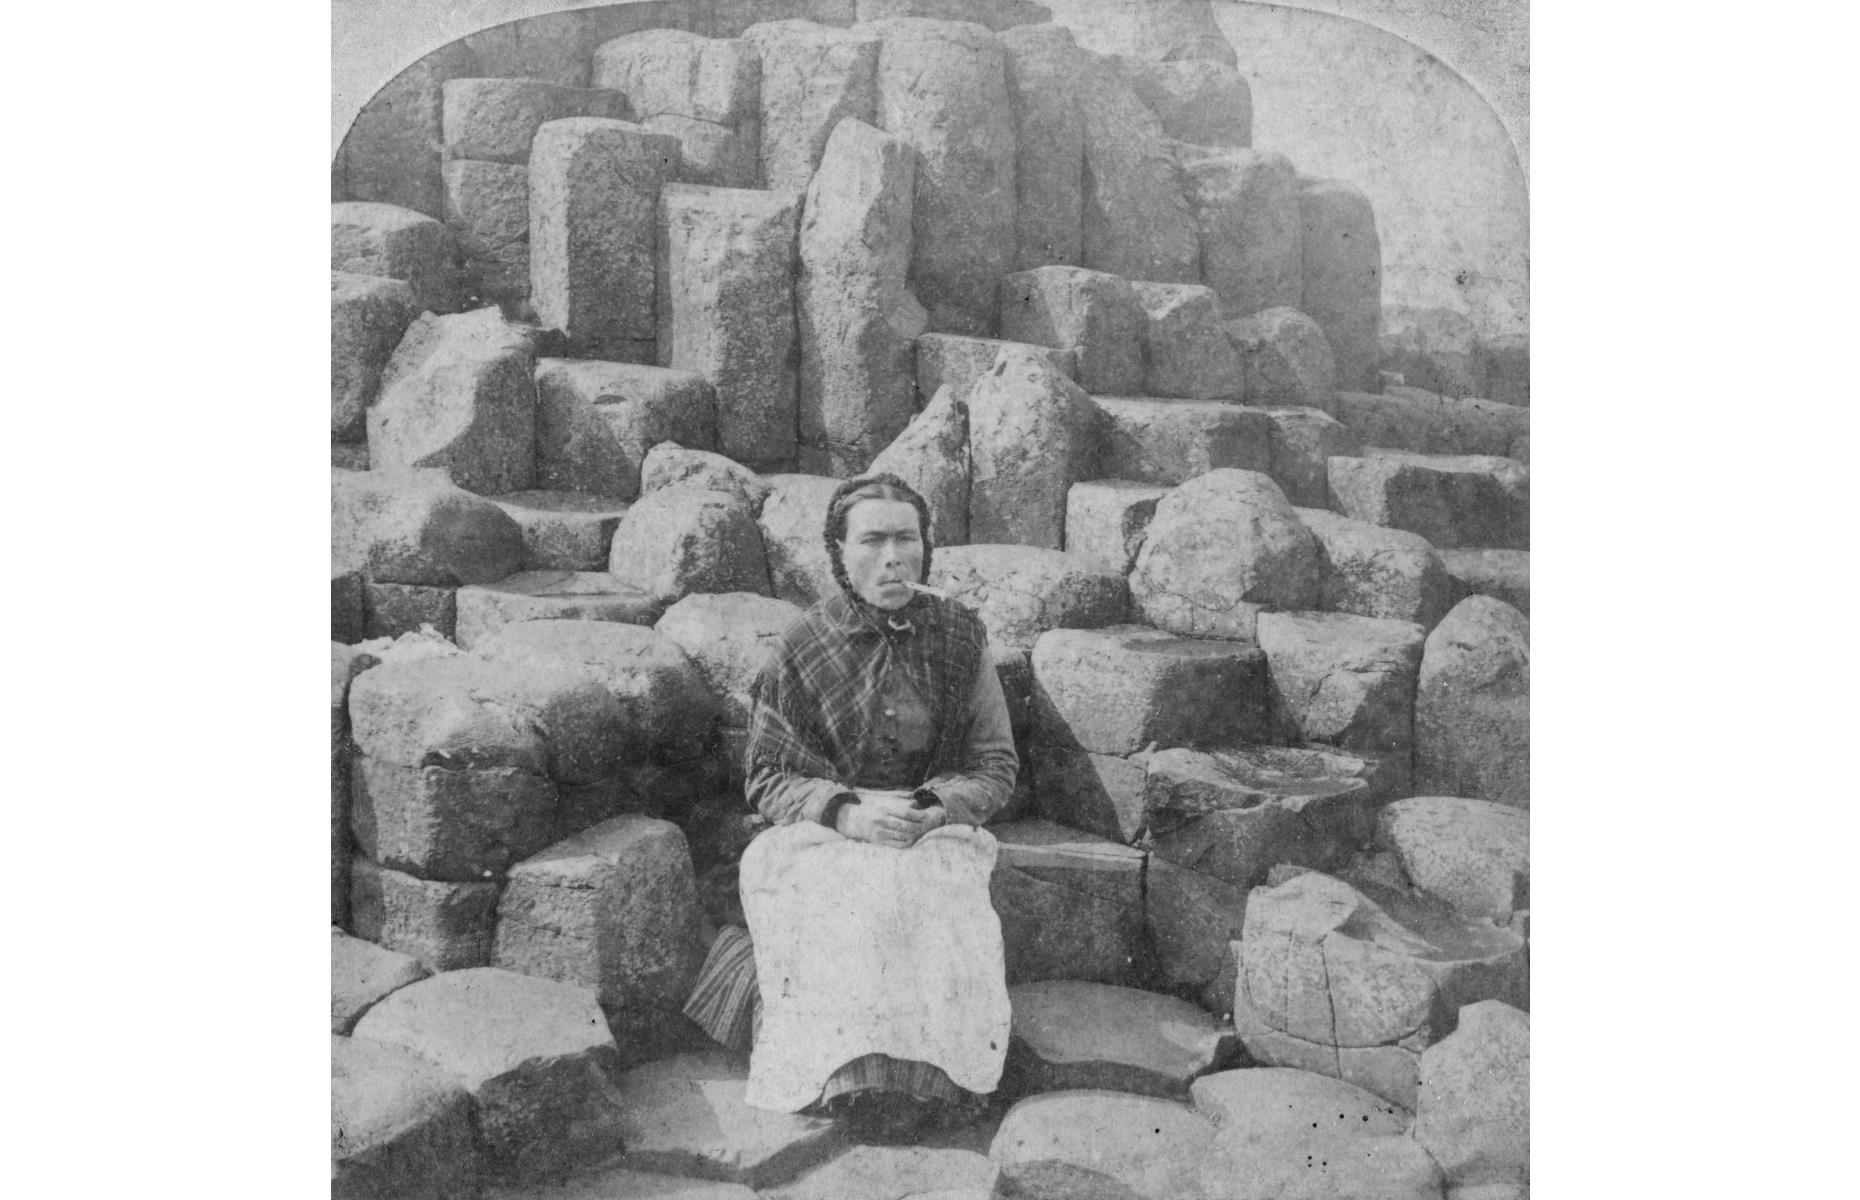 "Slide 5 of 51: The striking basalt columns of the Giant's Causeway in County Antrim, Northern Ireland, were formed by volcanic activity around 50 to 60 million years ago. It gained wider recognition when politician Sir Richard Bulkeley gave a presentation to the Royal Society in 1693 and became popular with wealthy Victorian tourists during the 1800s. The opening of the Causeway Hotel in 1836 drew more visitors to the site. This photograph from 1887 shows a woman sat at the ""Wishing Chair"", a set of columns that form a perfect seat, which is so popular today that the stones have become smooth and shiny."